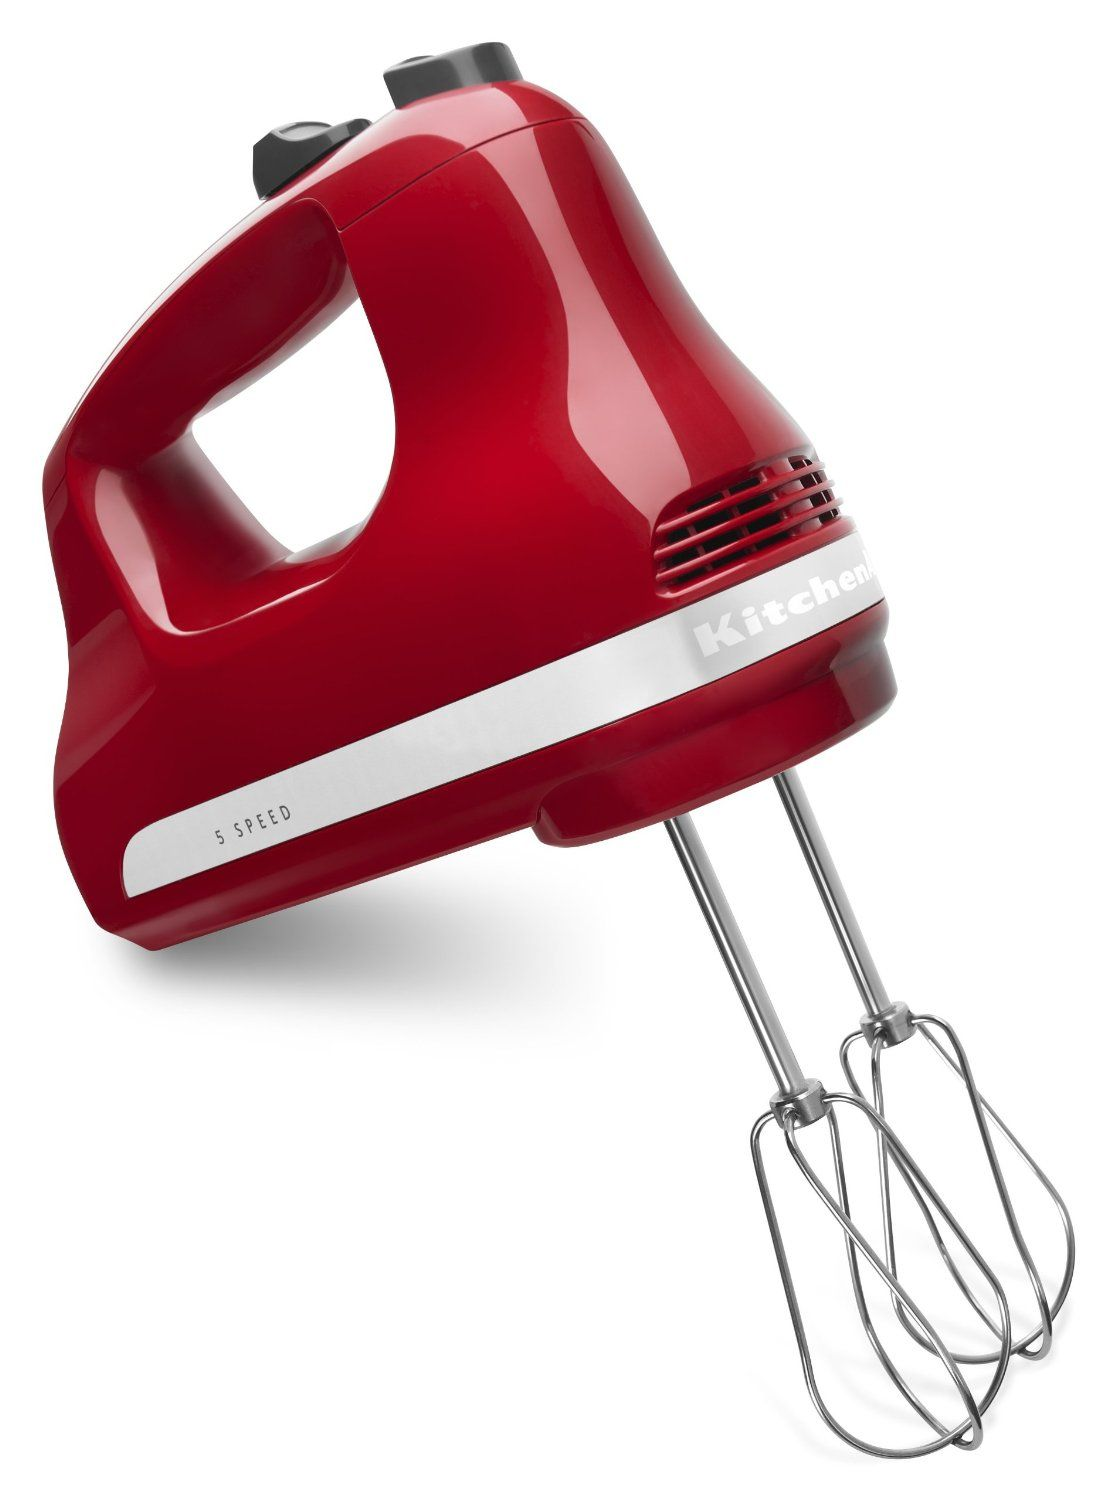 Küchengeräte Amazon Amazon Kitchenaid Khm512er 5 Speed Ultra Power Hand Mixer